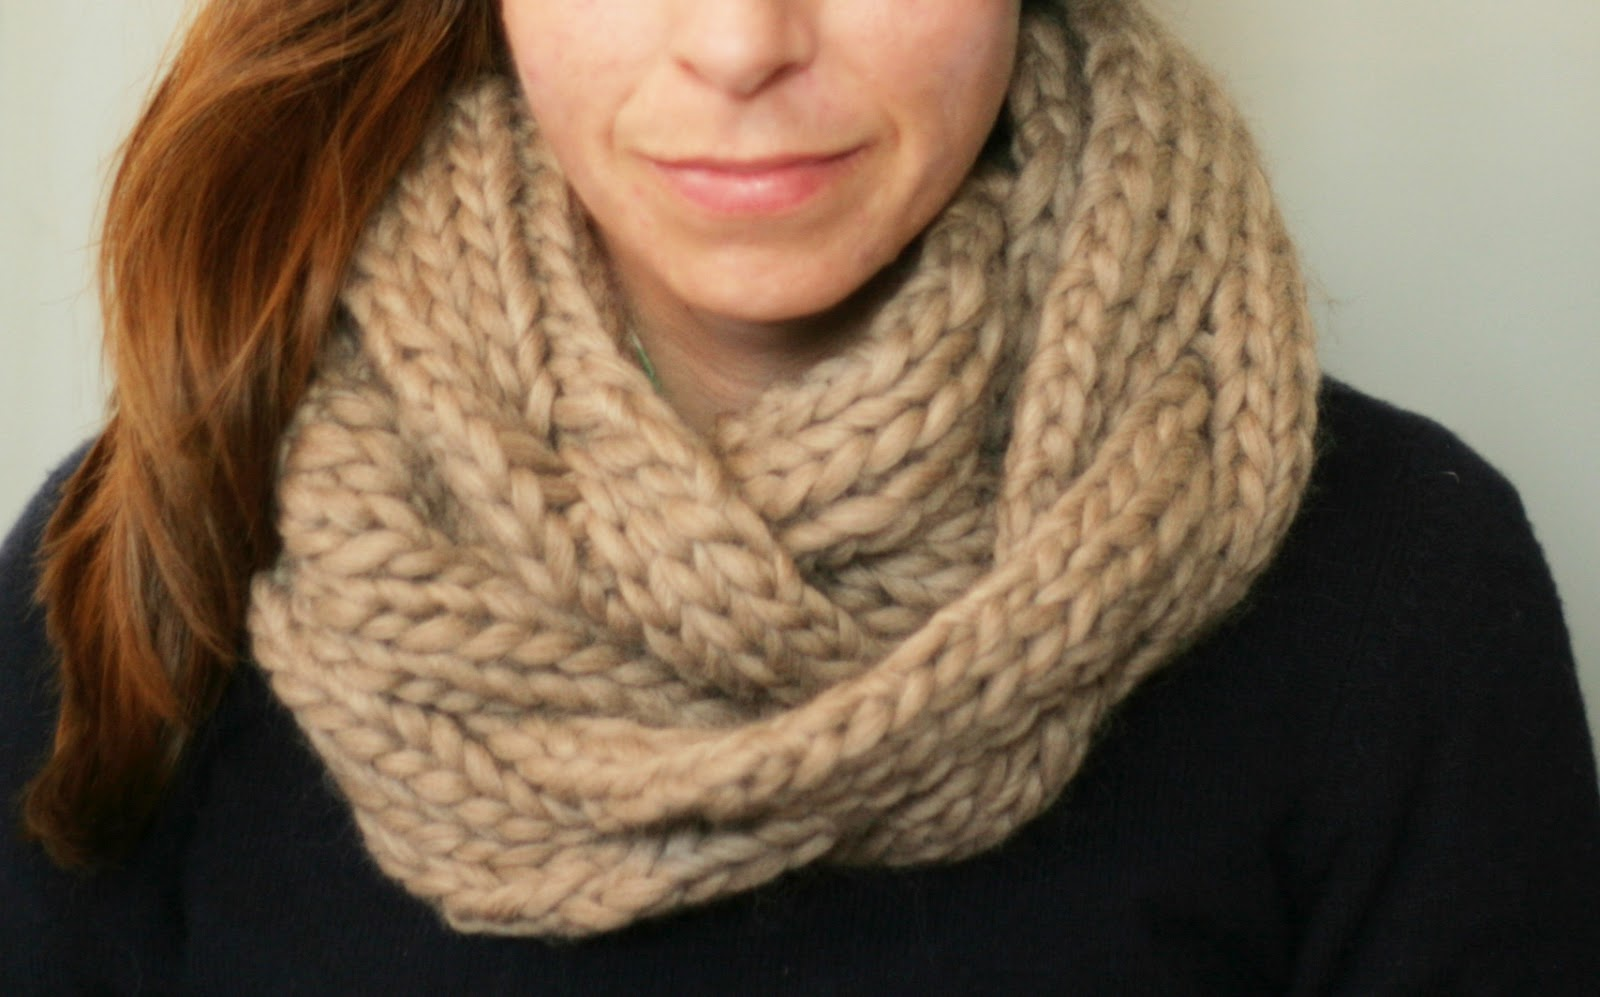 KATE PRESTON HANDKNITS /BLOG: Kate\'s Braided Cable Cowl